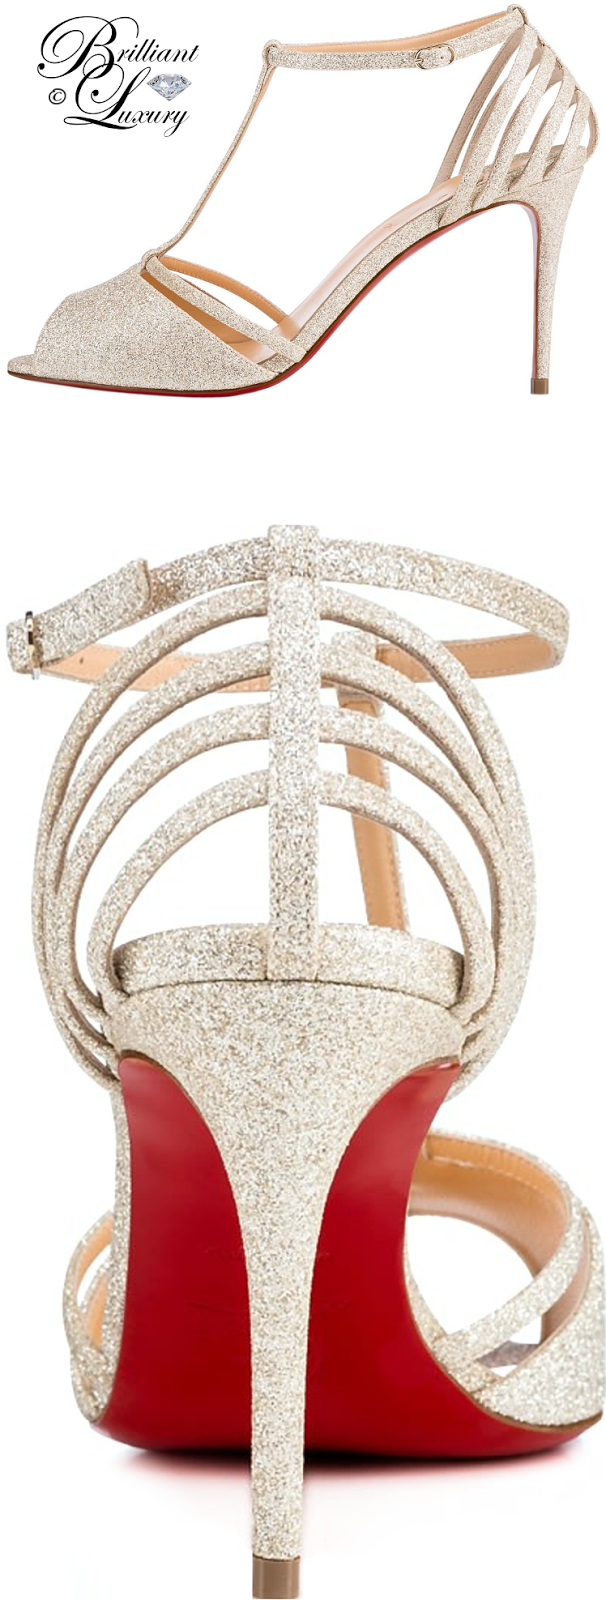 Brilliant Luxury ♦ Christian Louboutin Patitta Glitter Sandals